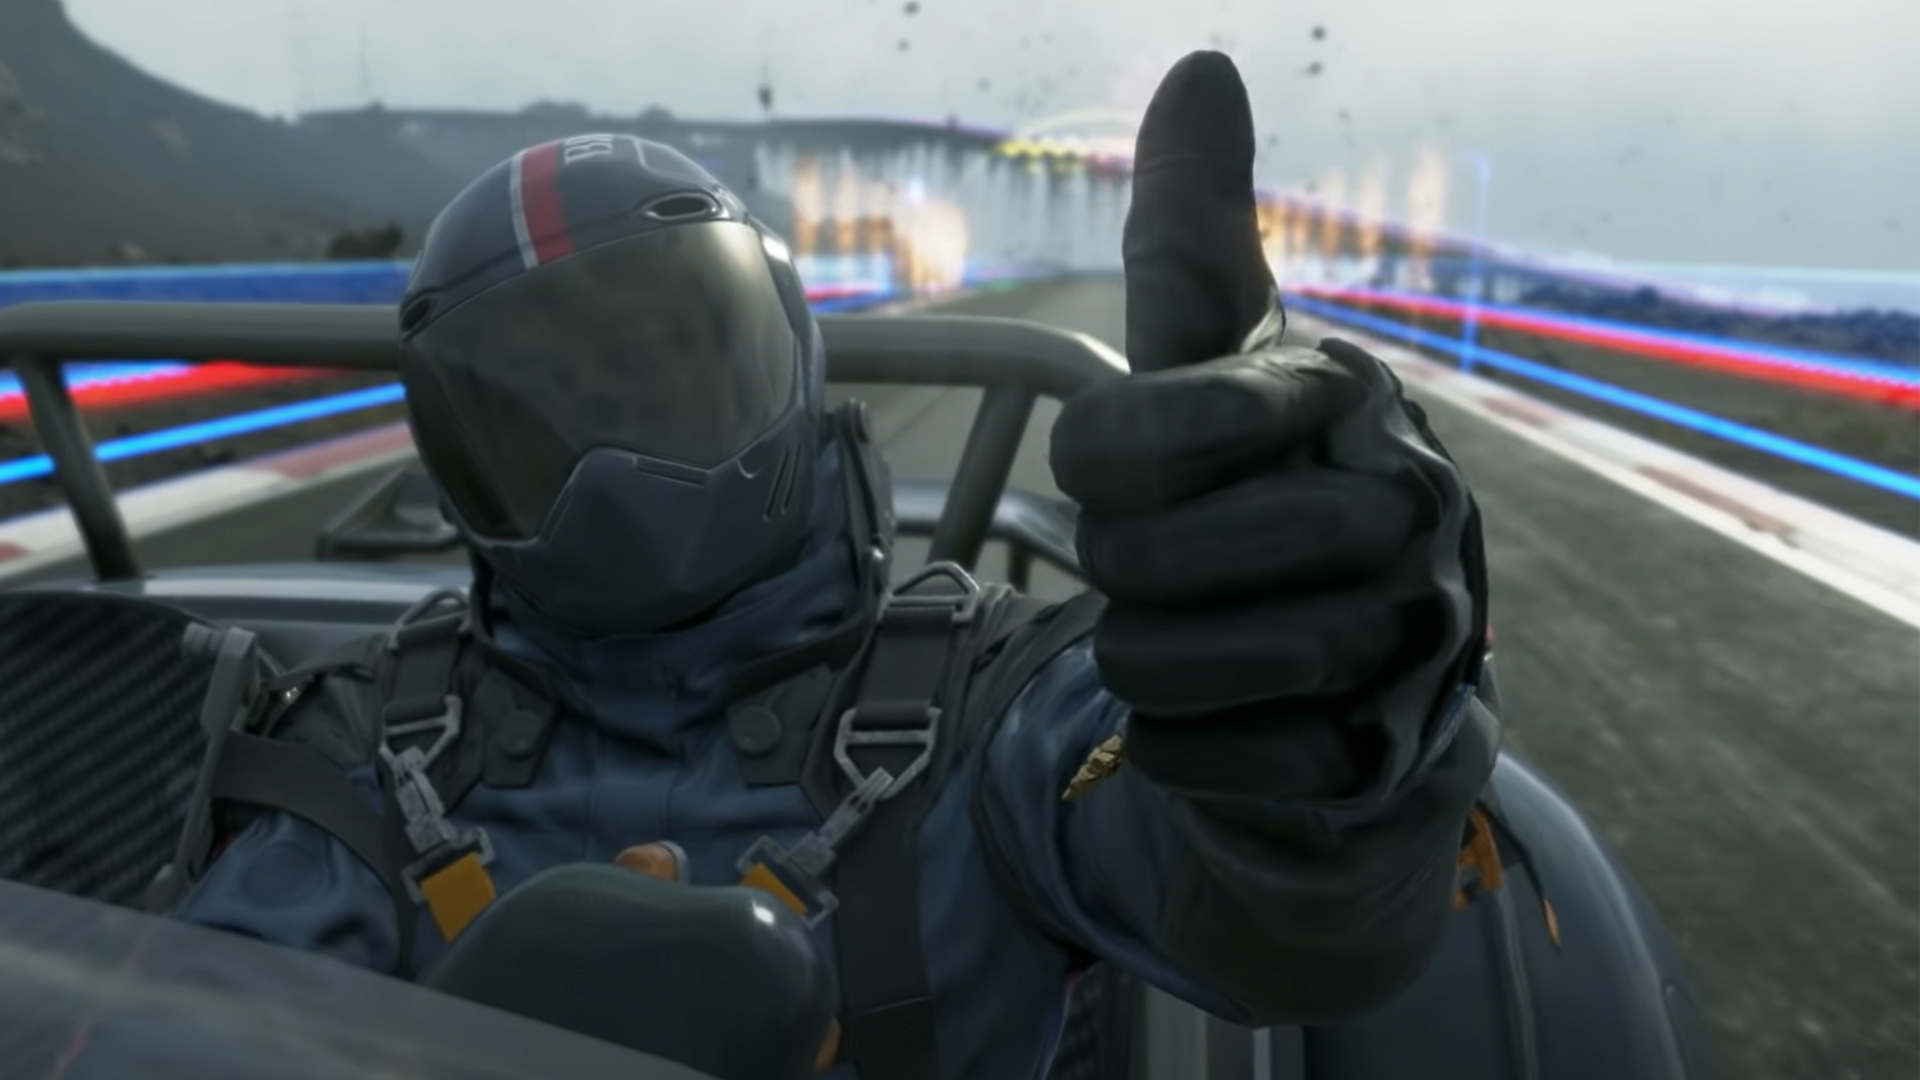 Death Stranding is now a racing game, kind of